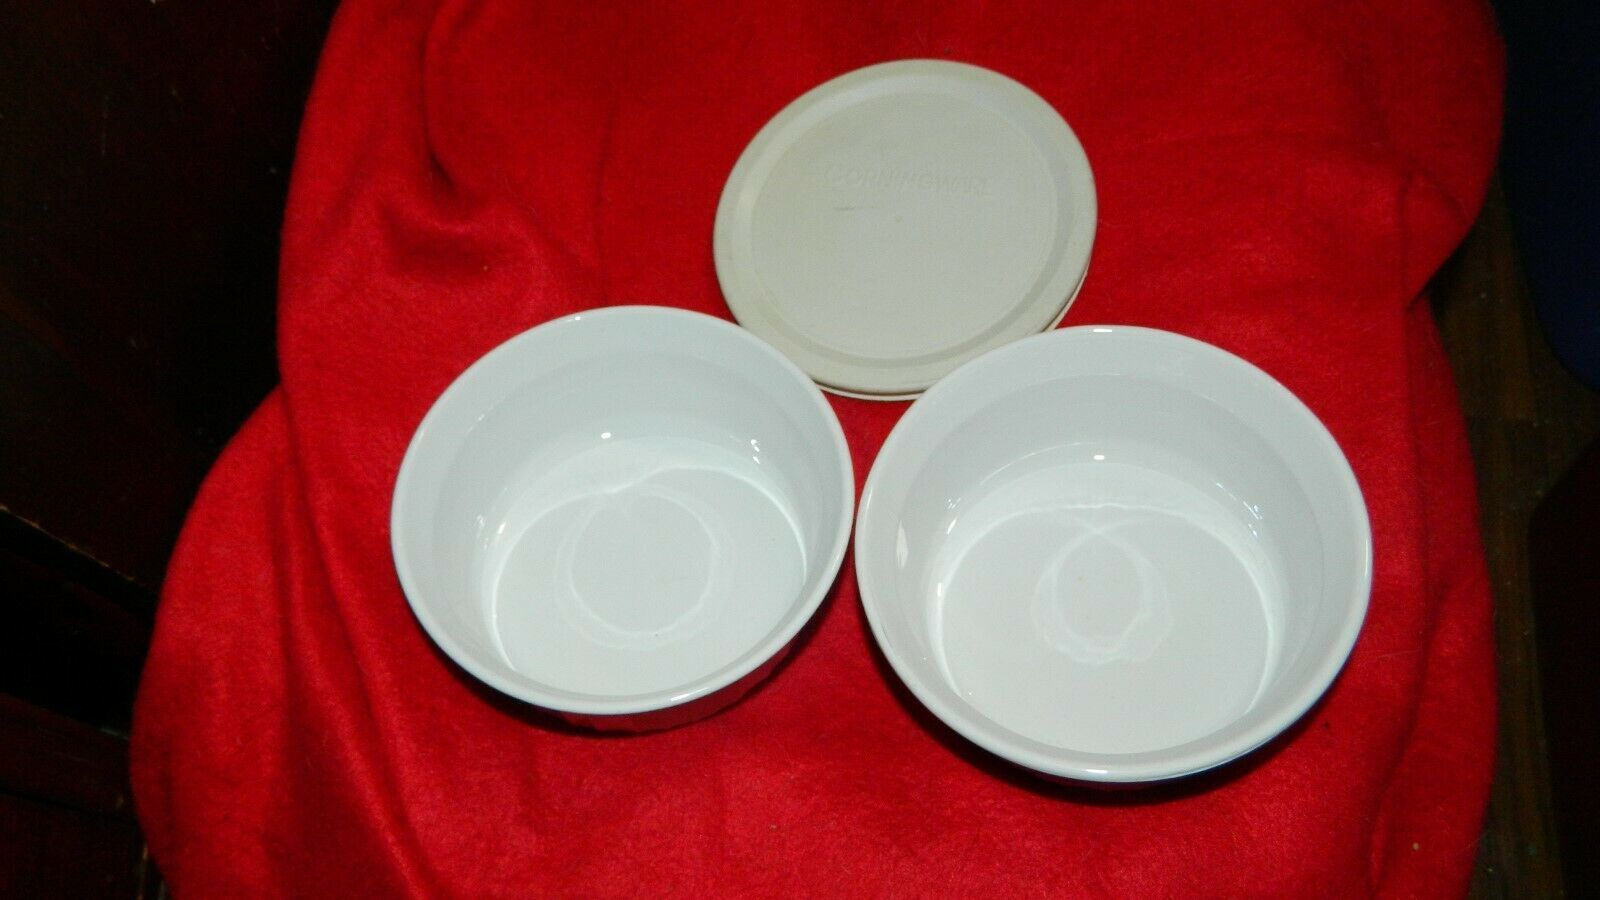 Primary image for CORNING WARE F-16-B ROUND 16 OUNCE CASSEROLE DISH x 2 + 1 LID FREE USA SHIP